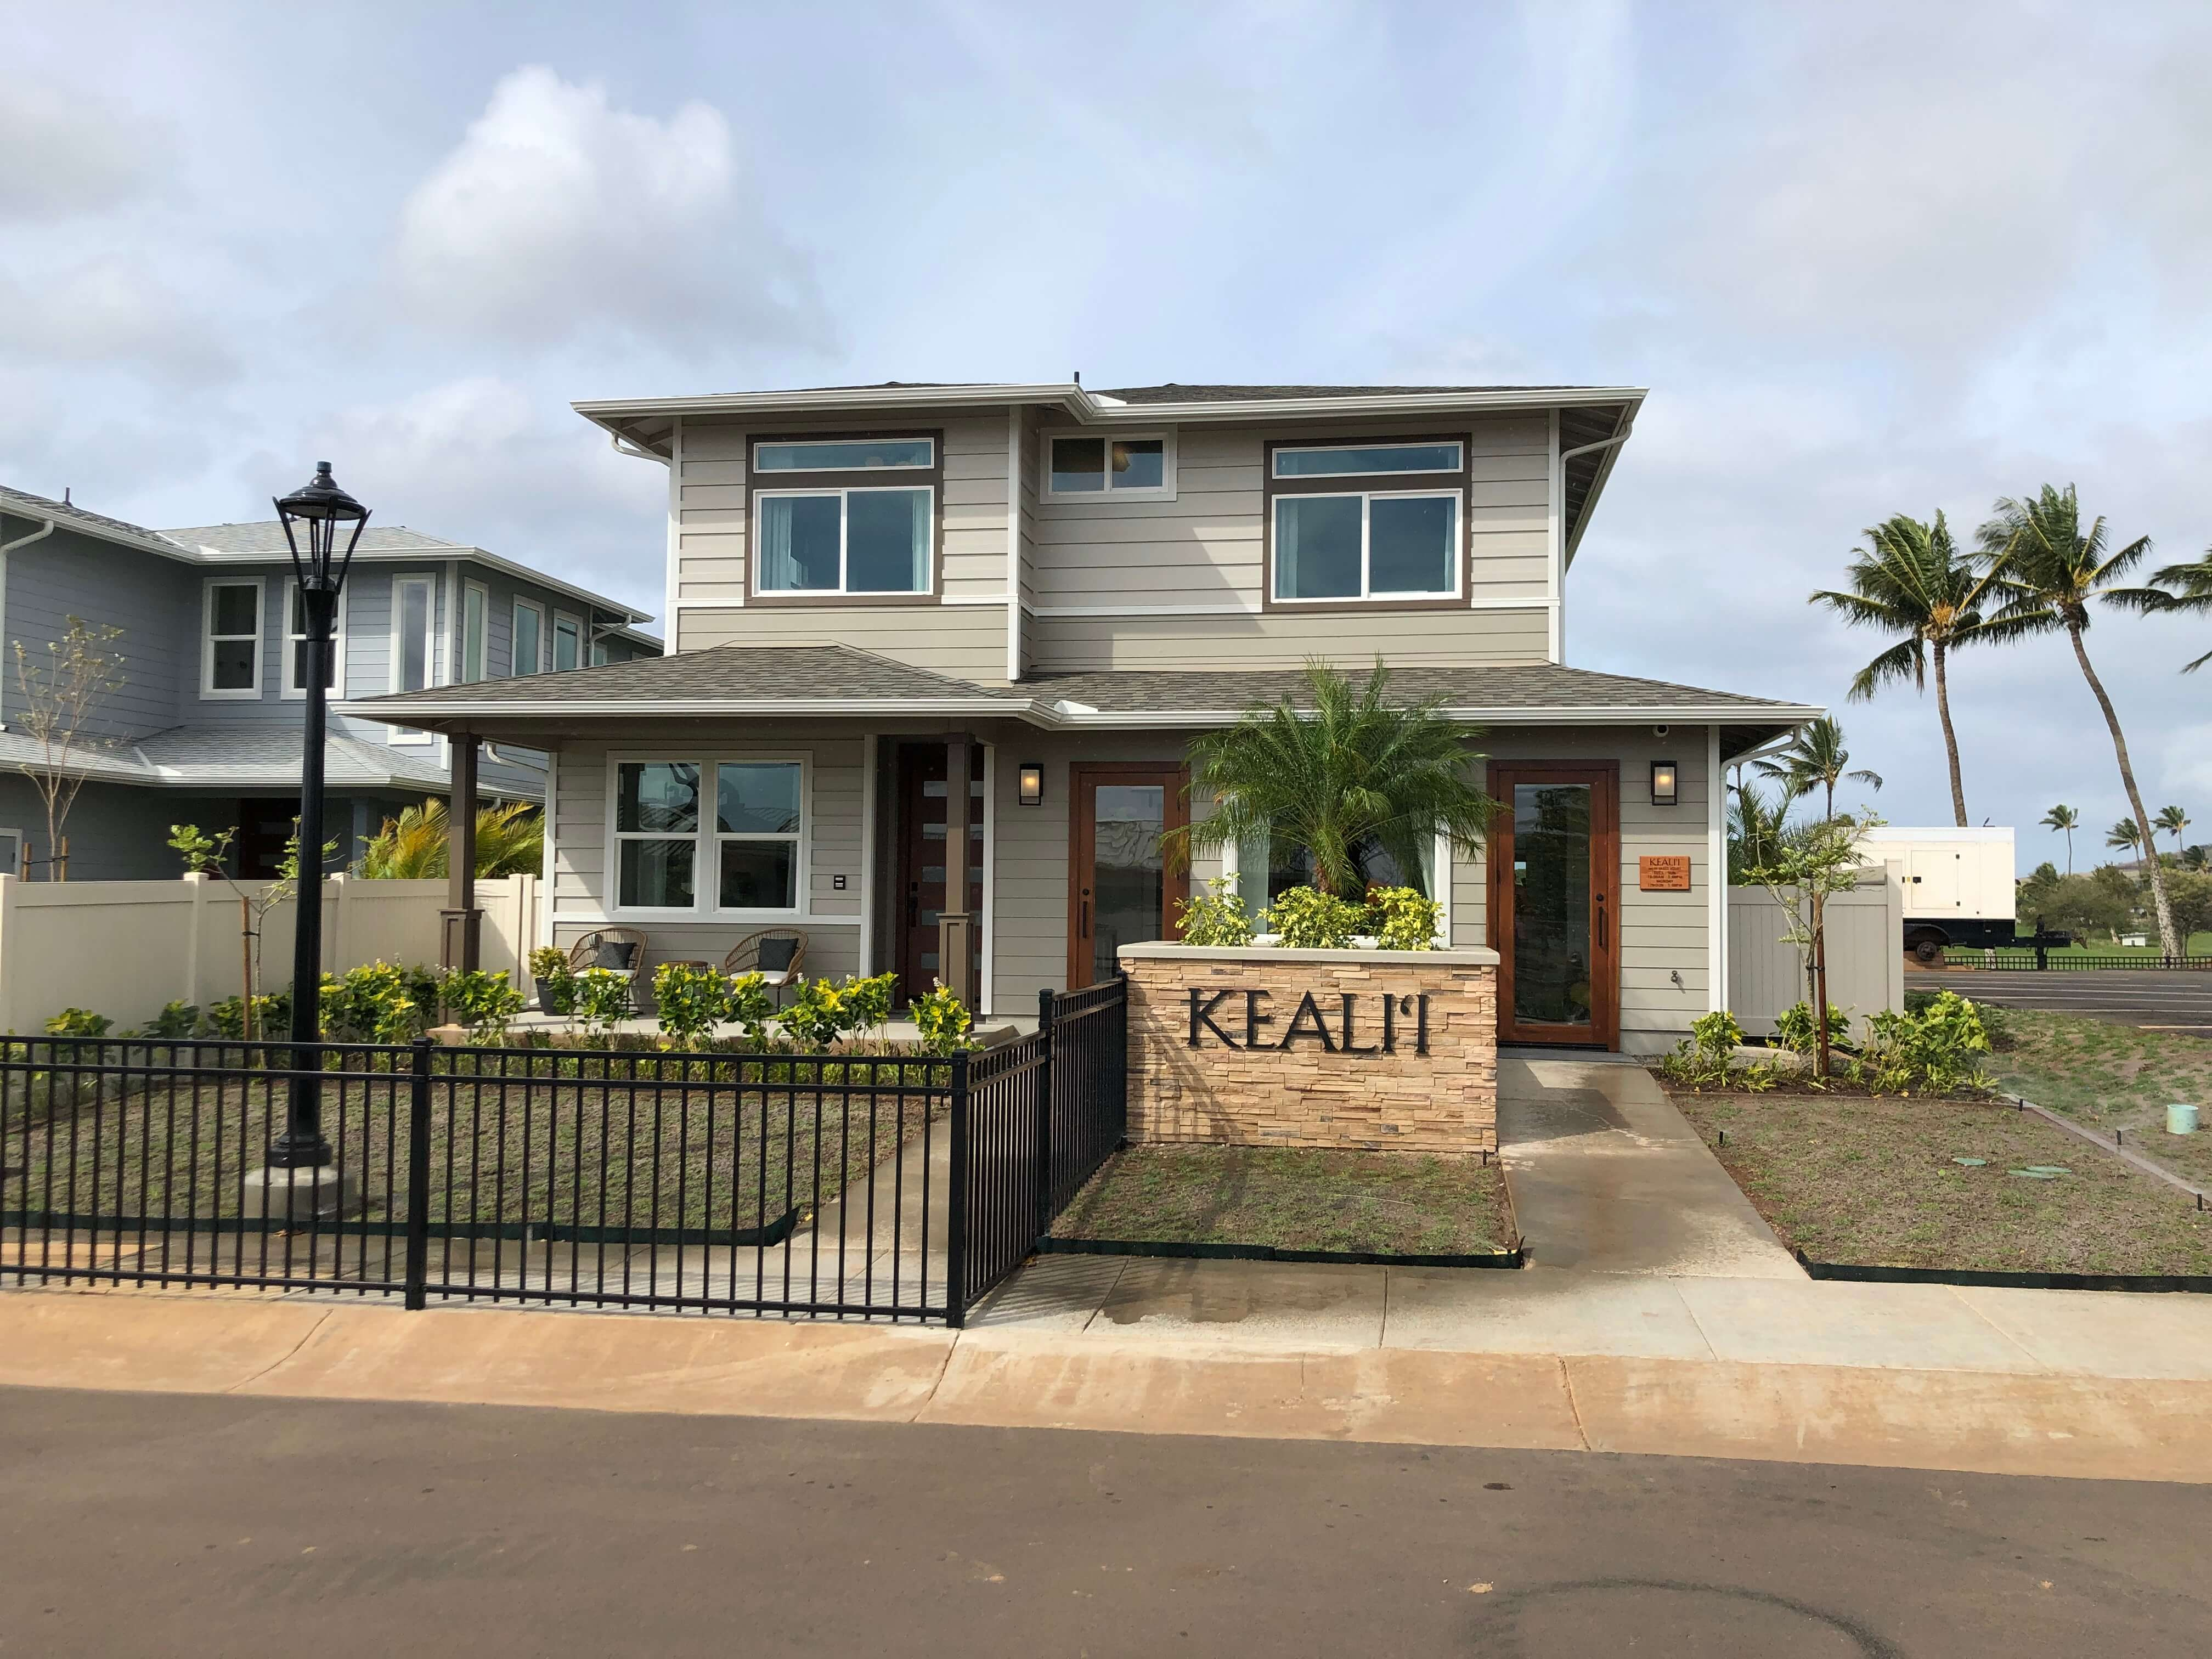 kealii by gentry model home